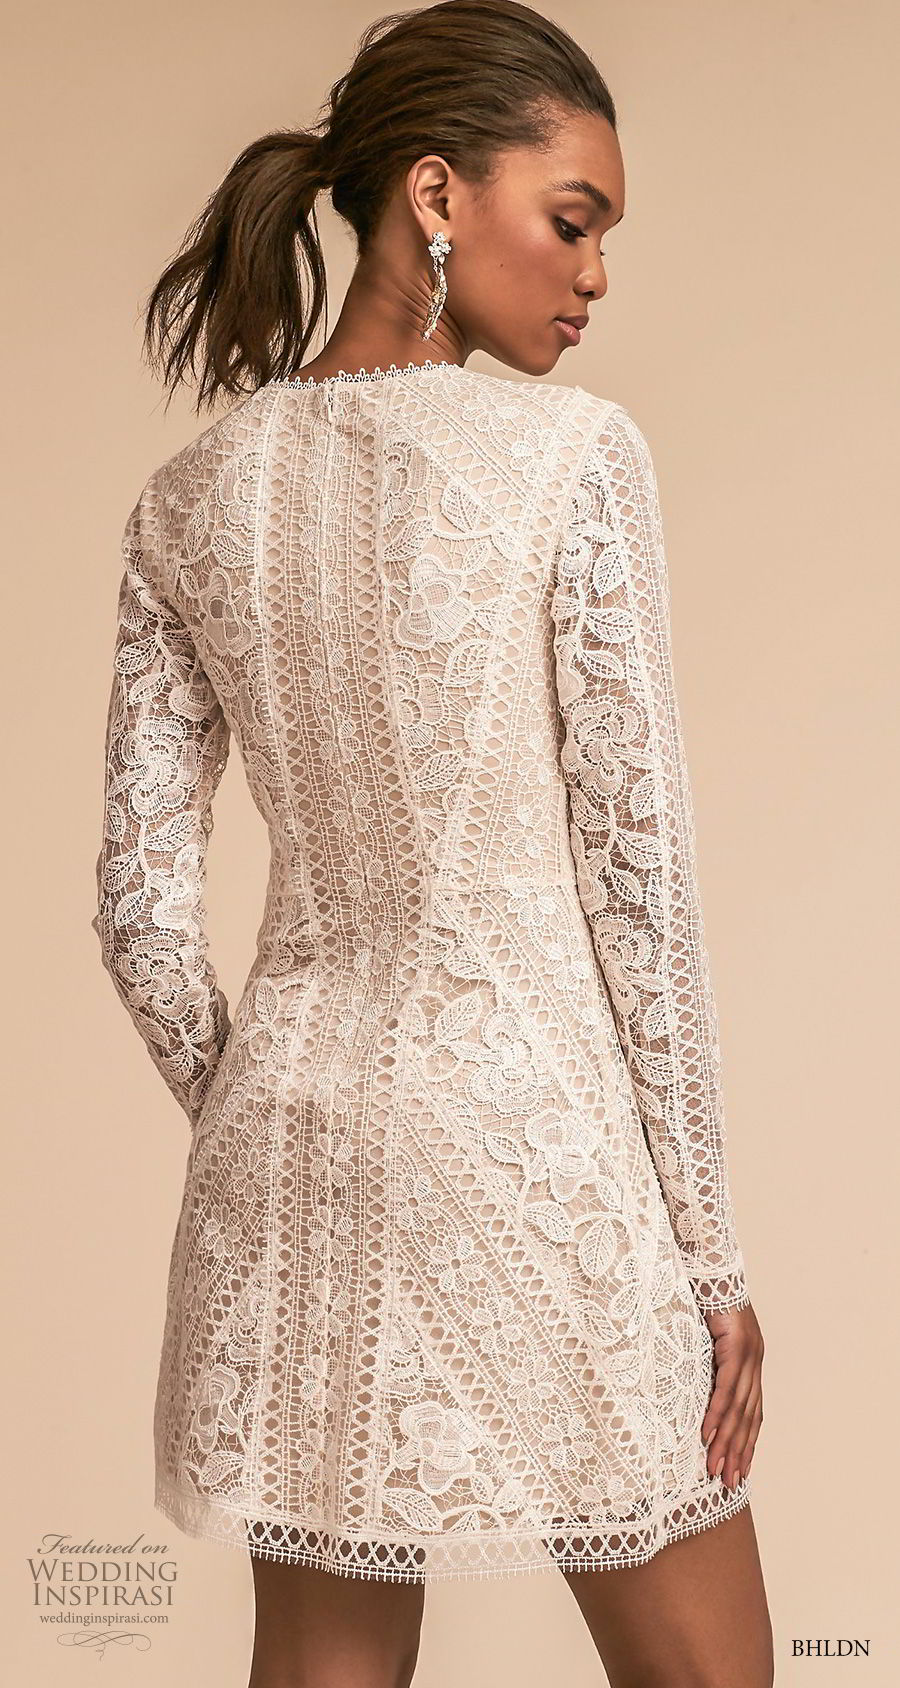 bhldn 2018 away bridal long sleeves jewel neck full embellishment bohemian above the knee short wedding dress covered lace back (1) bv